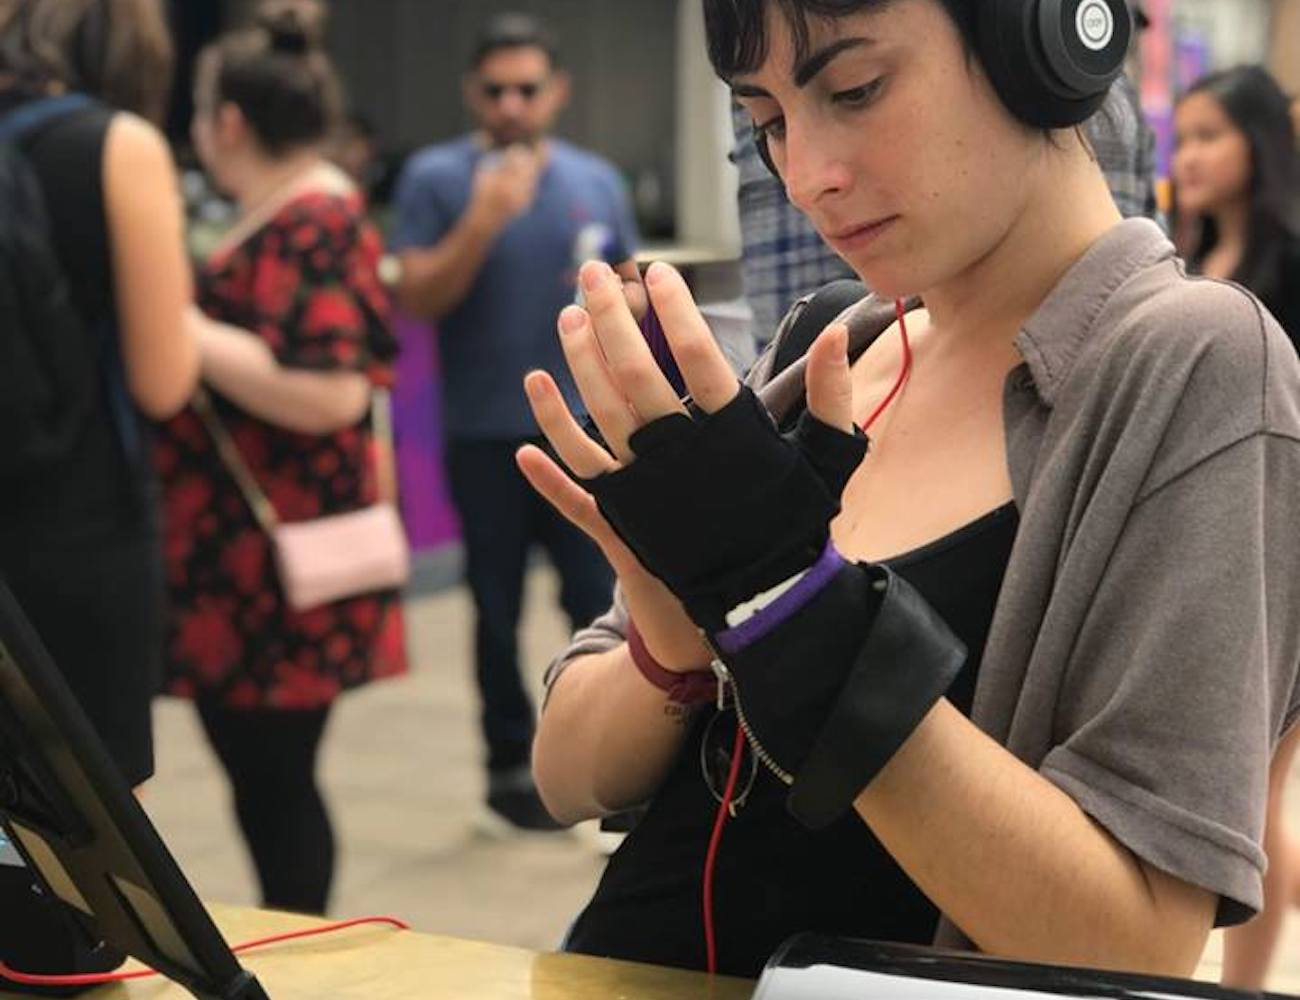 KAiKU Musical Touch Glove makes it possible for anyone to make music